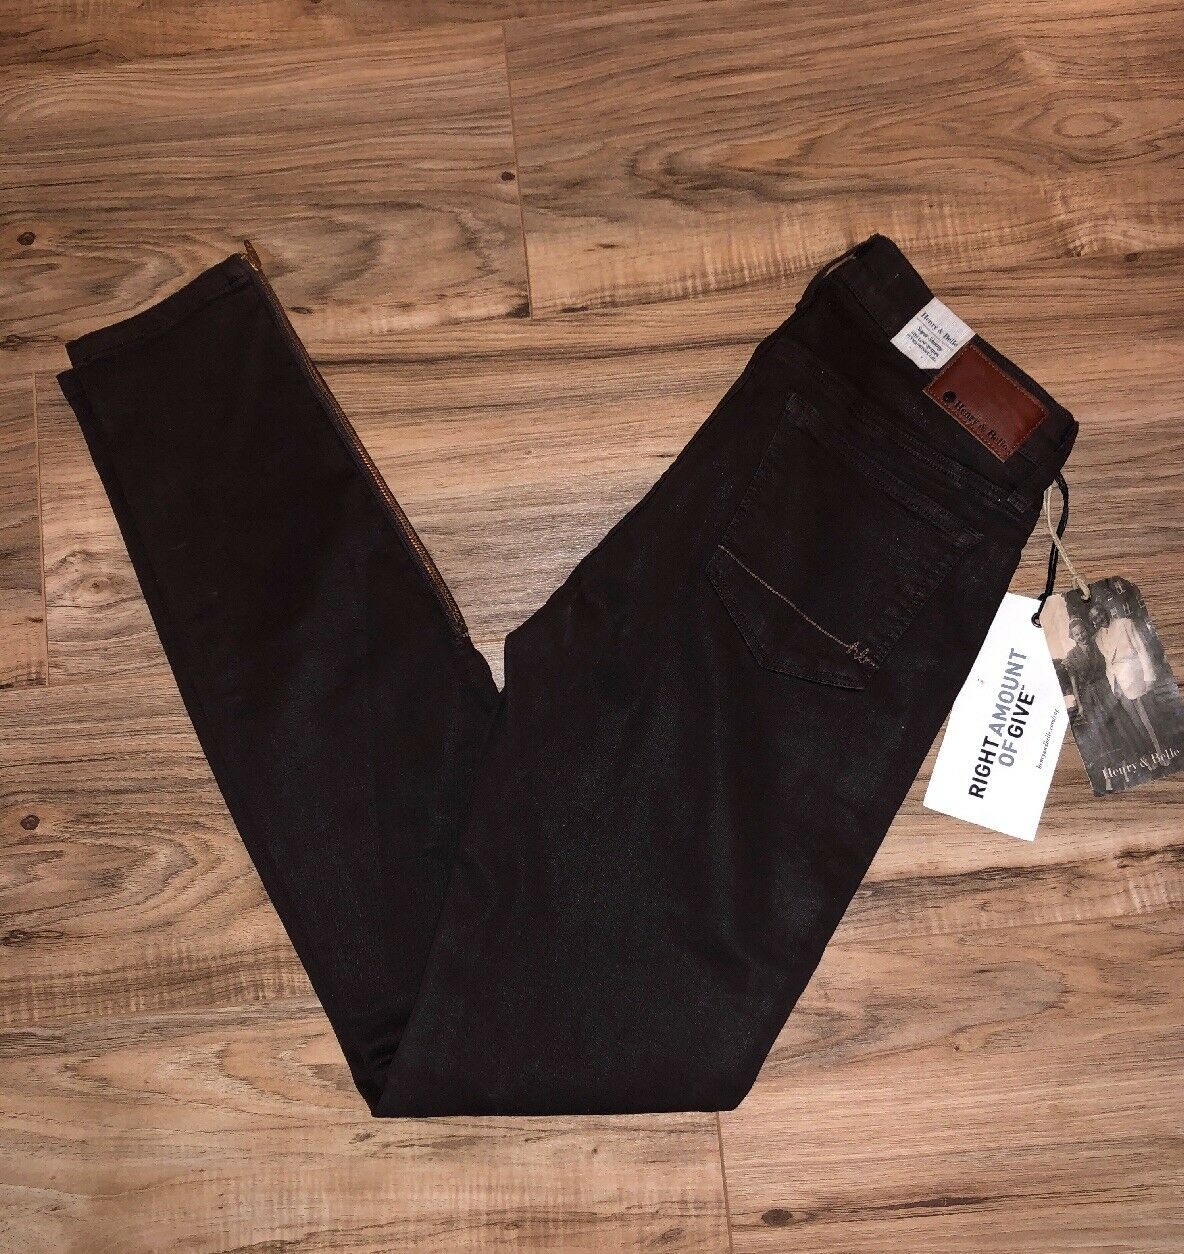 NWT Henry And Belle Pants Size 28 Super Skinny